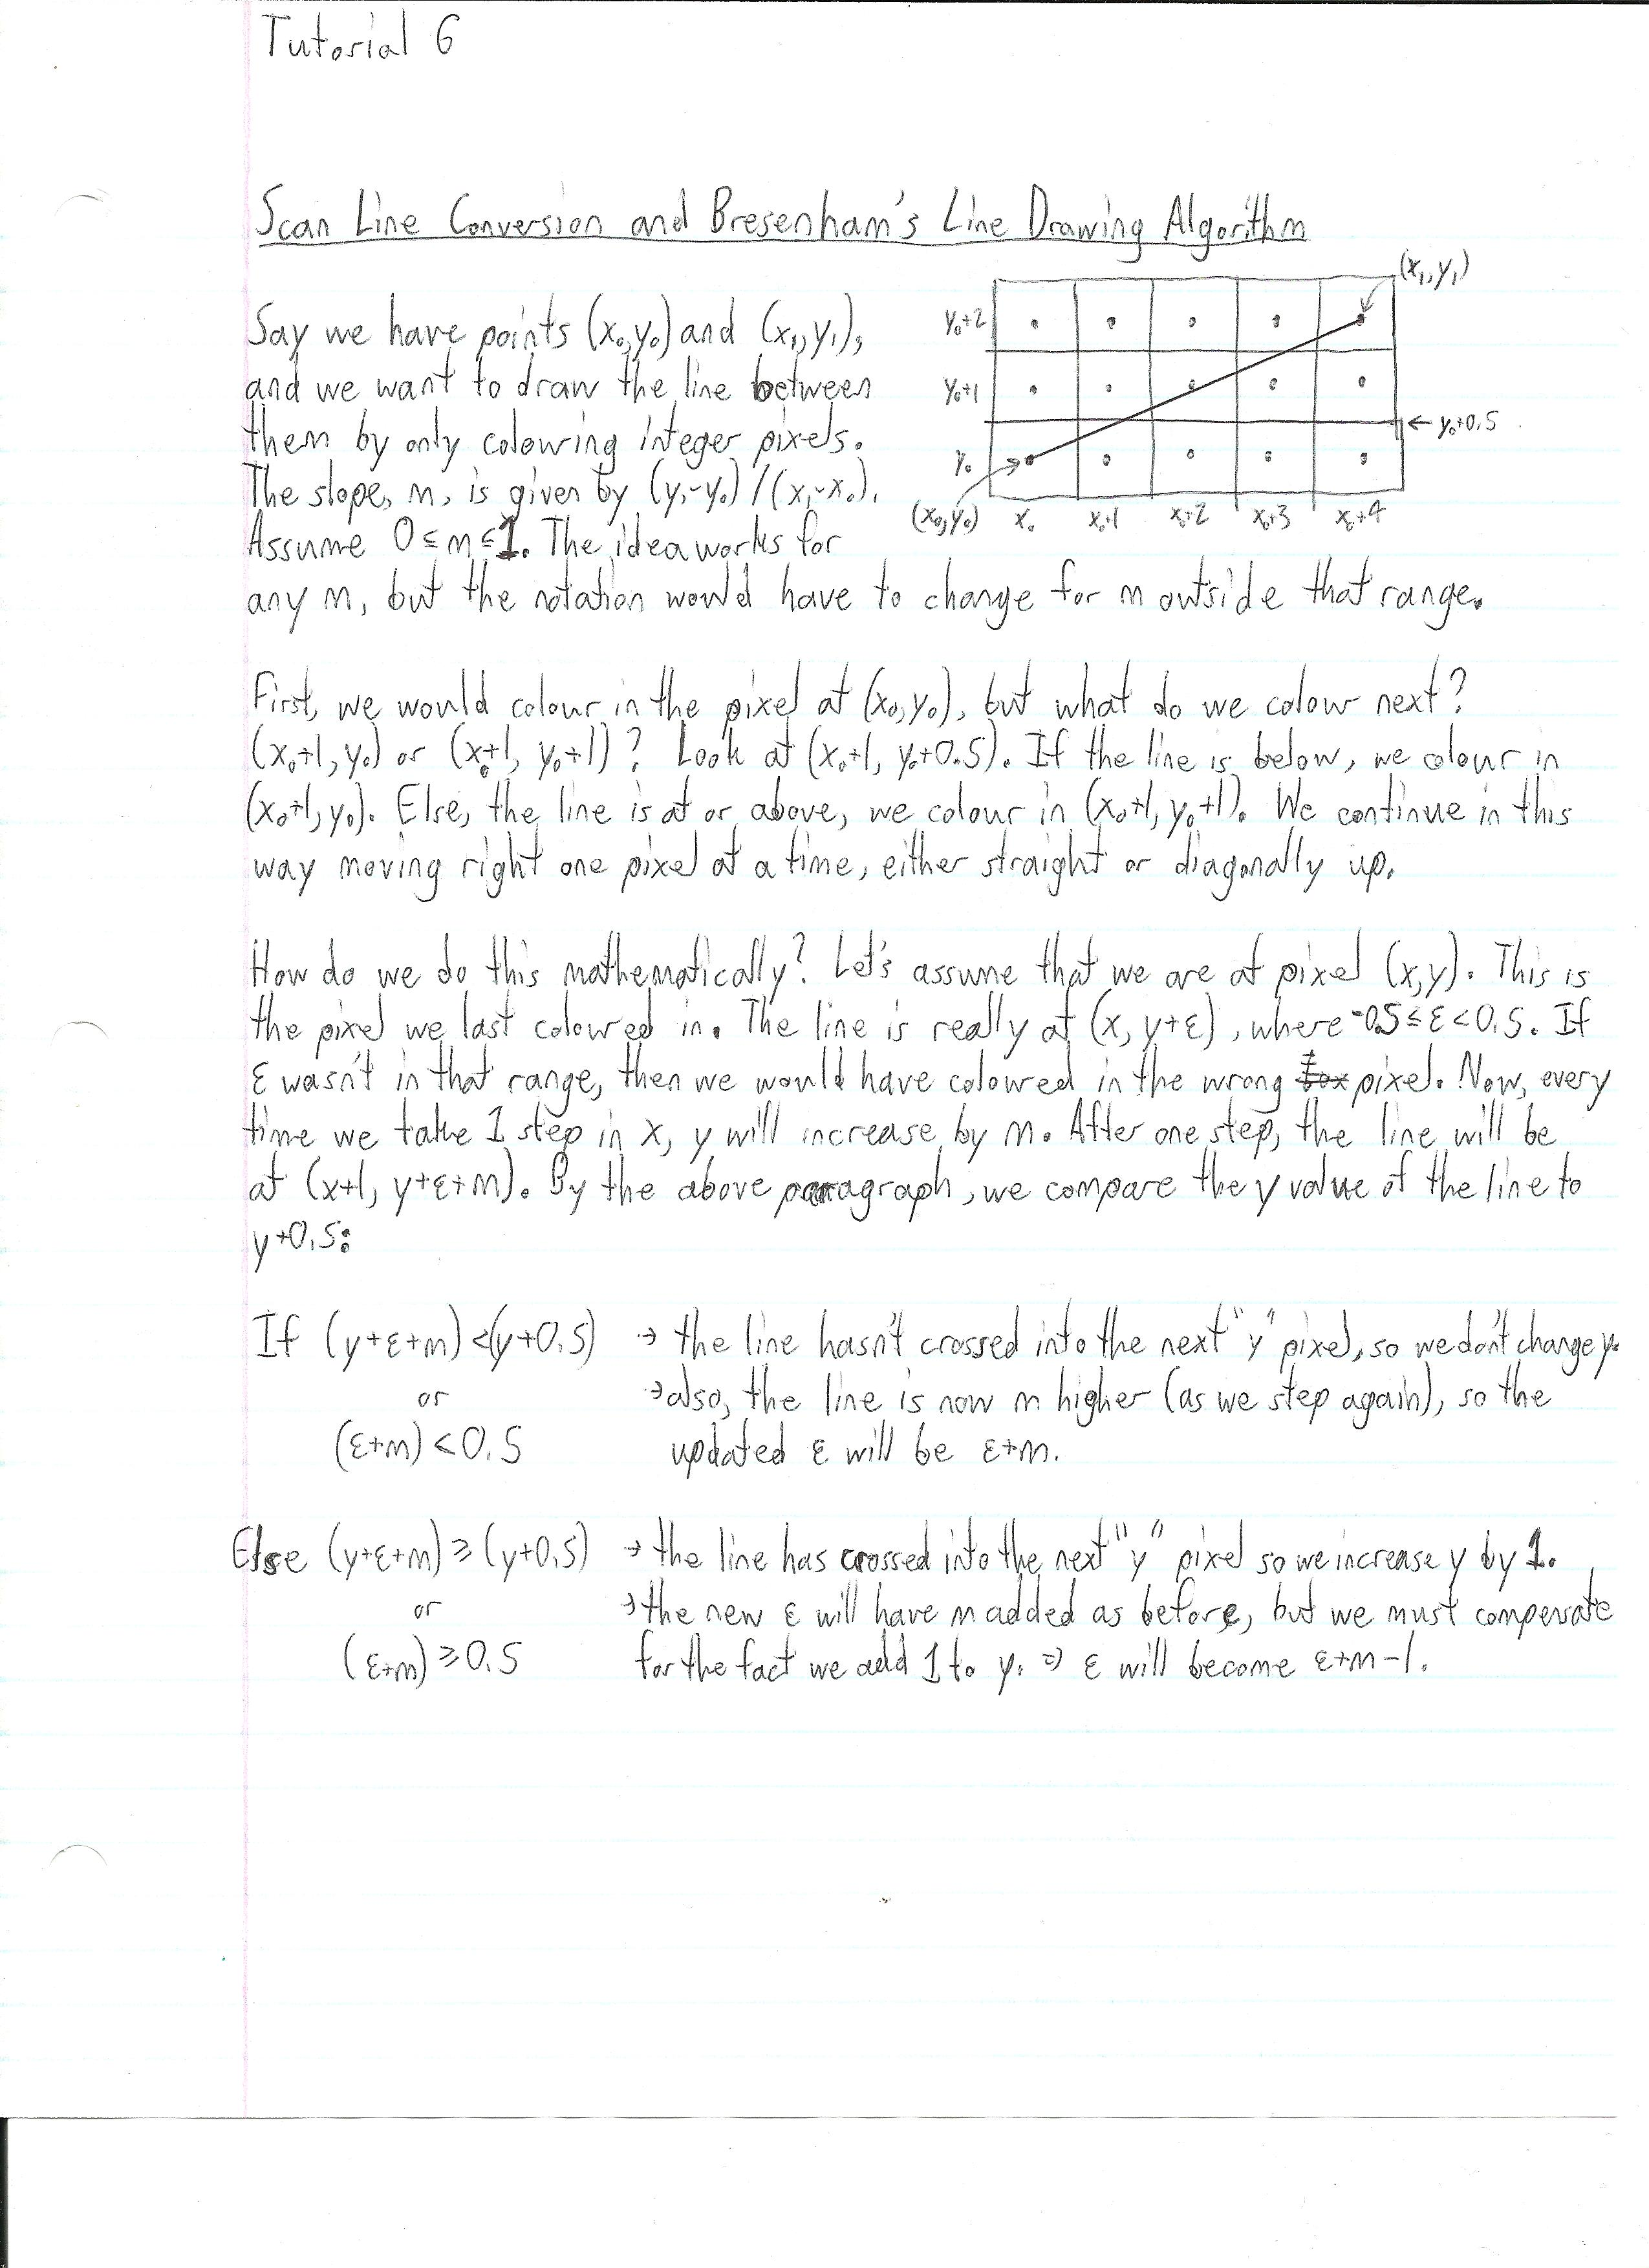 Bresenham Line Drawing Algorithm Lecture Notes : Liviu mihai calin